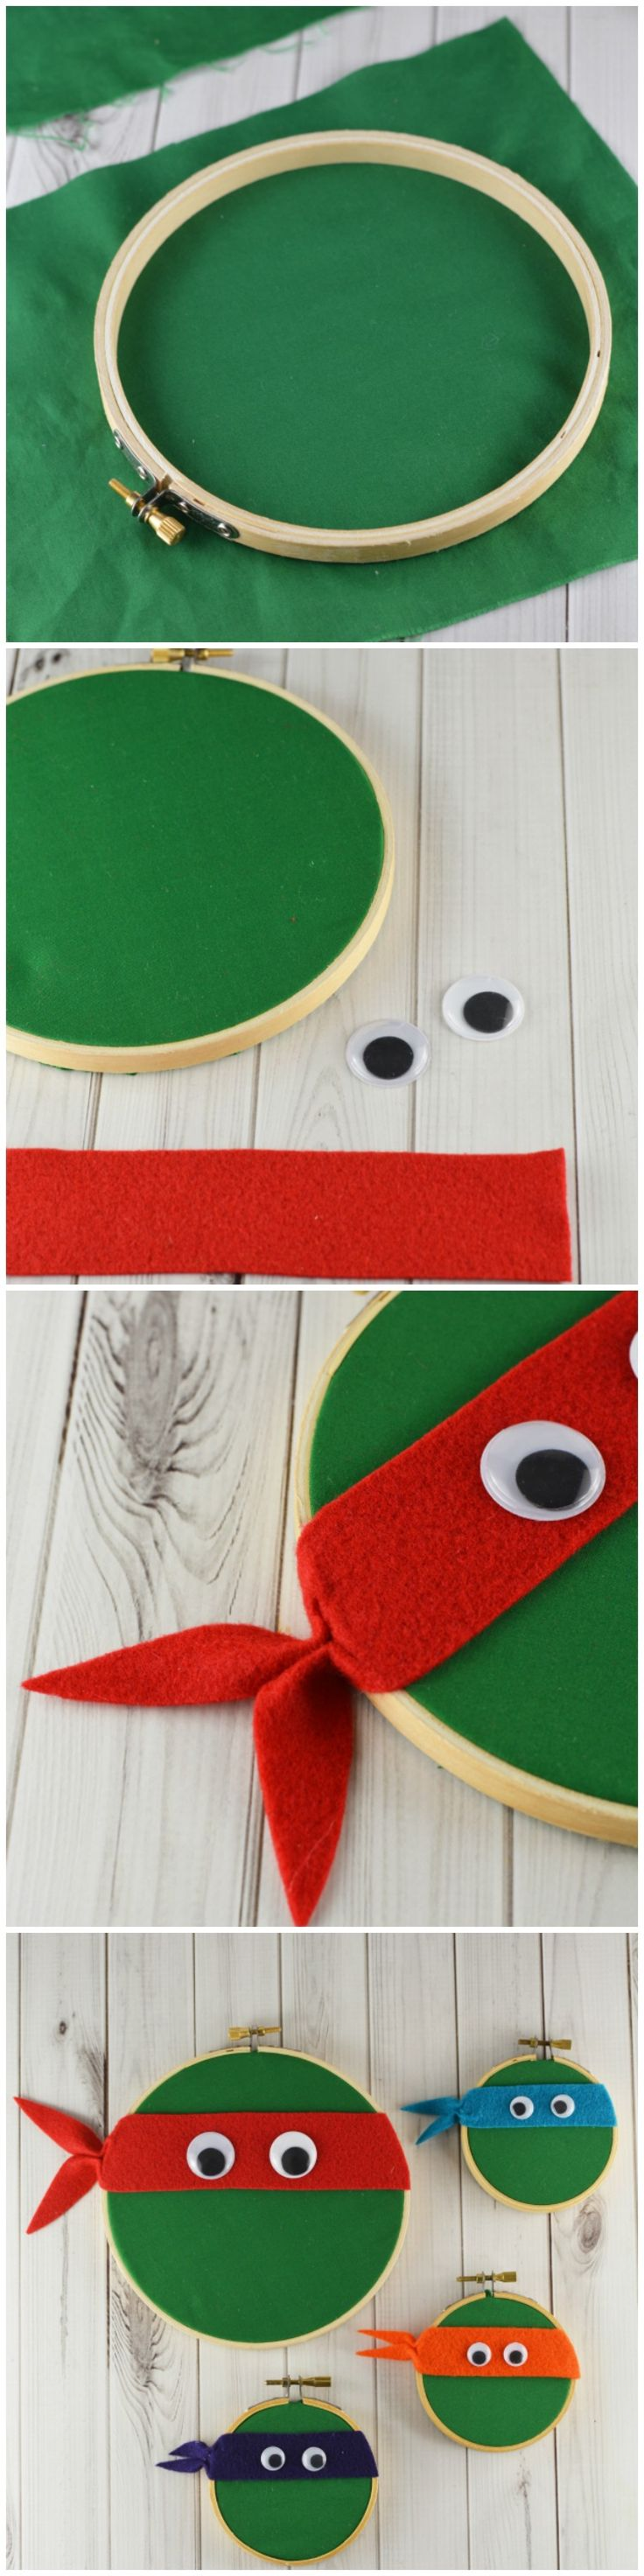 Have a teenage mutant ninja turtle fan on hand? Here is a fun TMNT embroidery hood craft, hand out as gifts, or party favors.